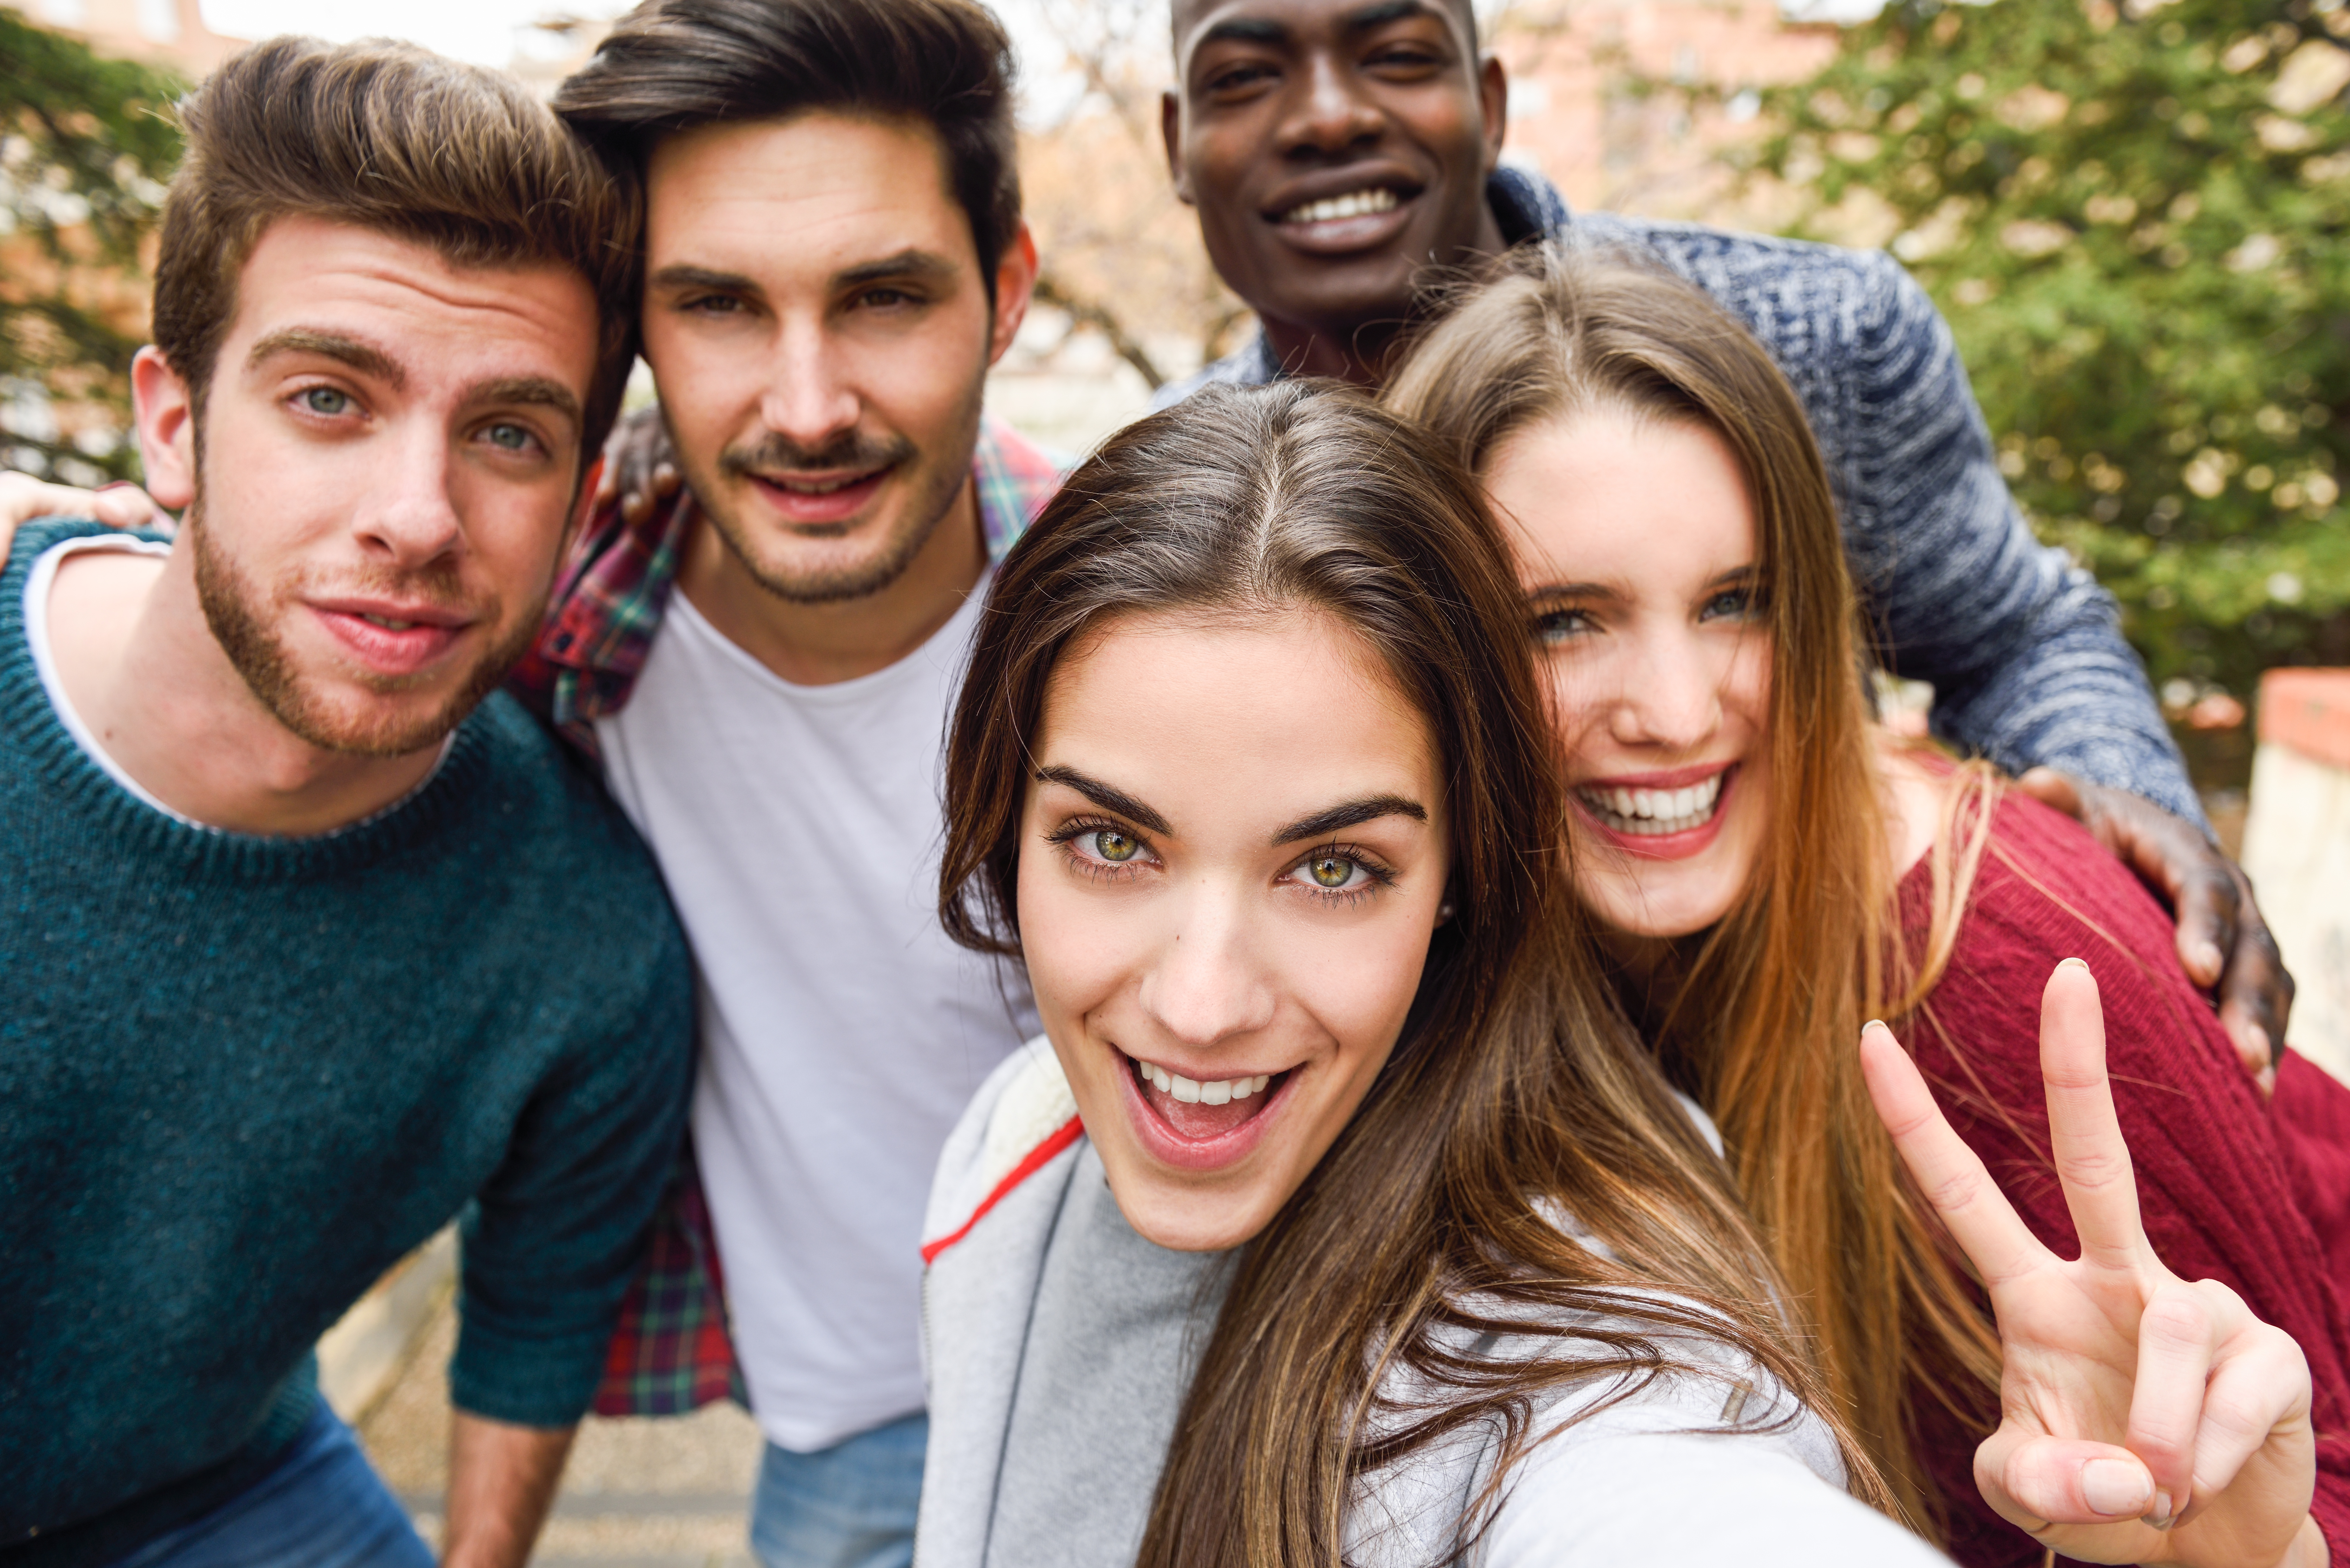 7 Social Media Is Only For Young People